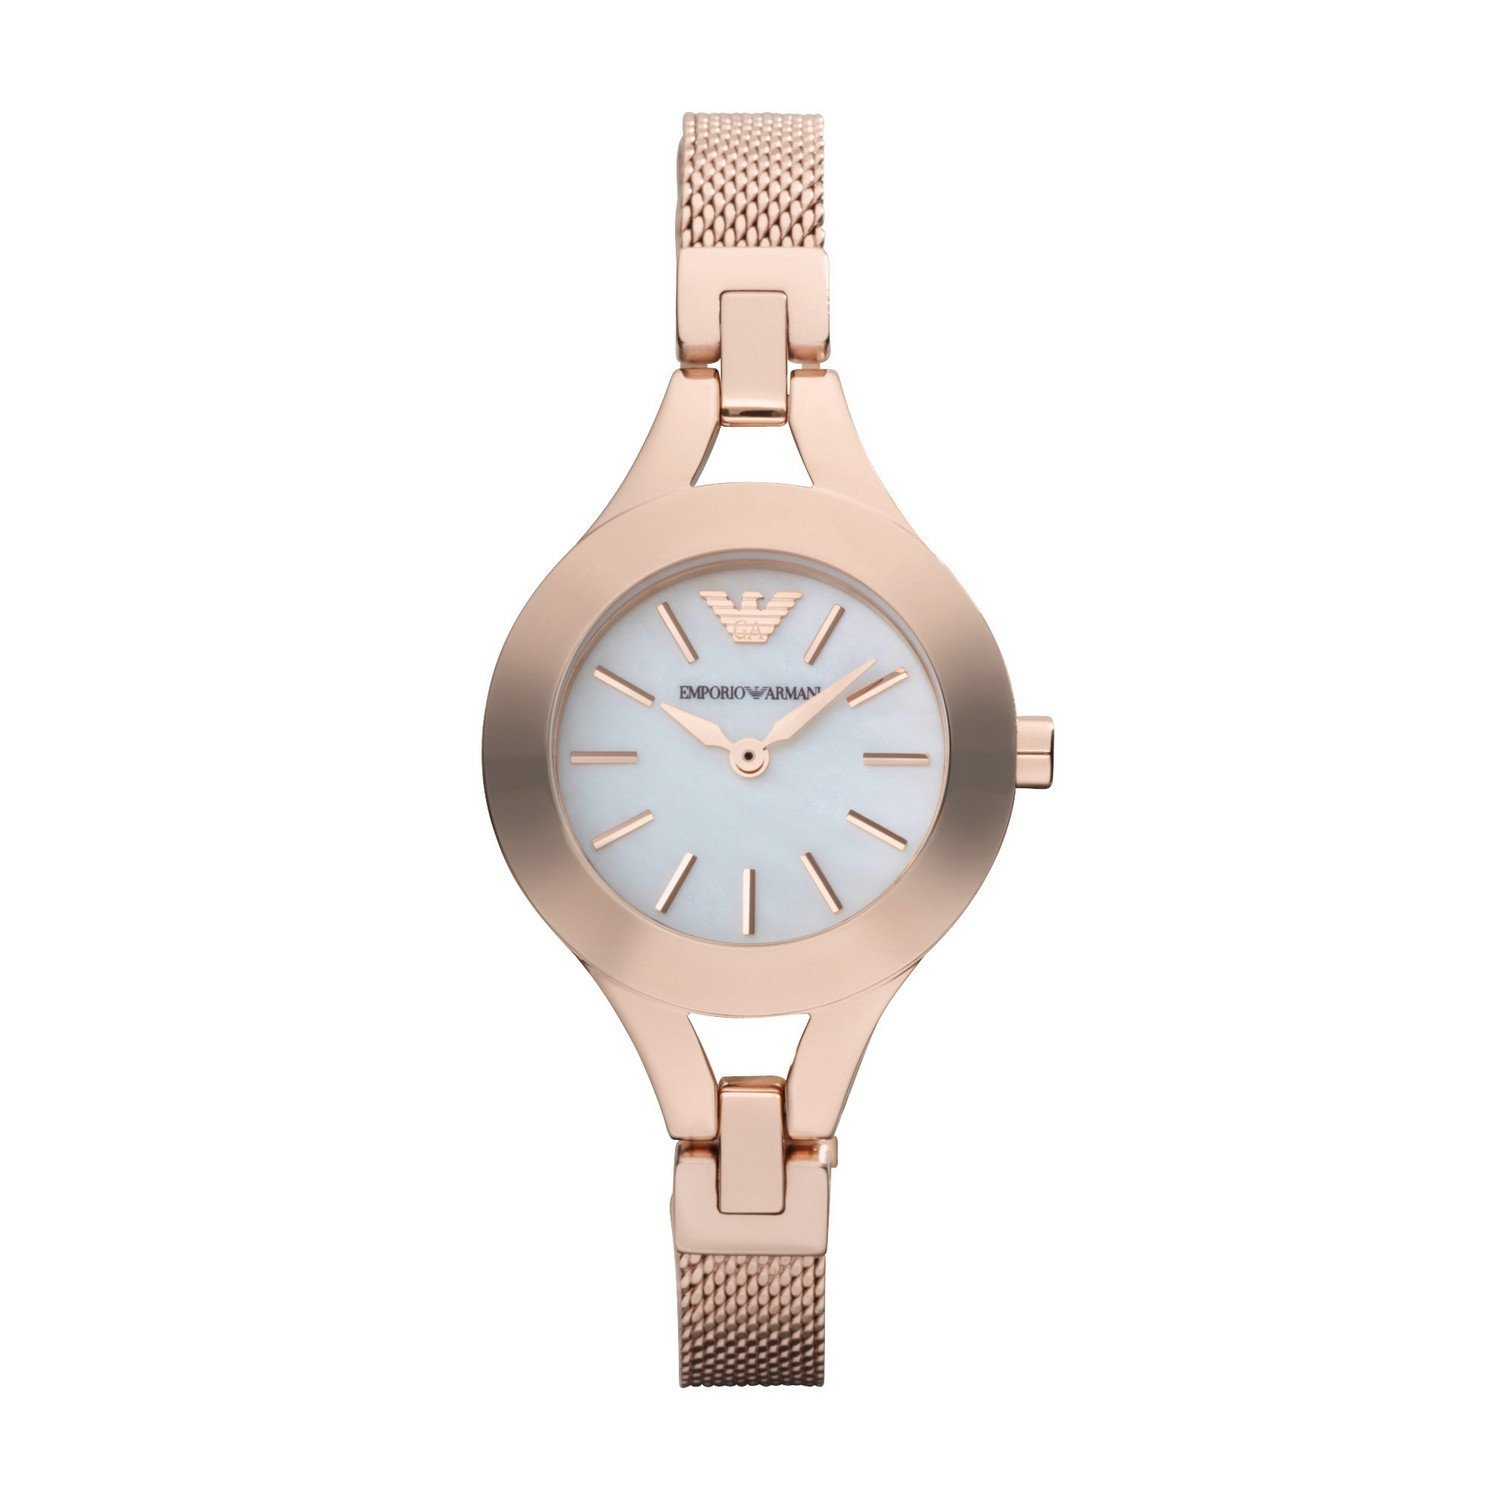 240581002 Buy cheap jewels and cheap watches, Offers, Discount OutletJoyeria ...